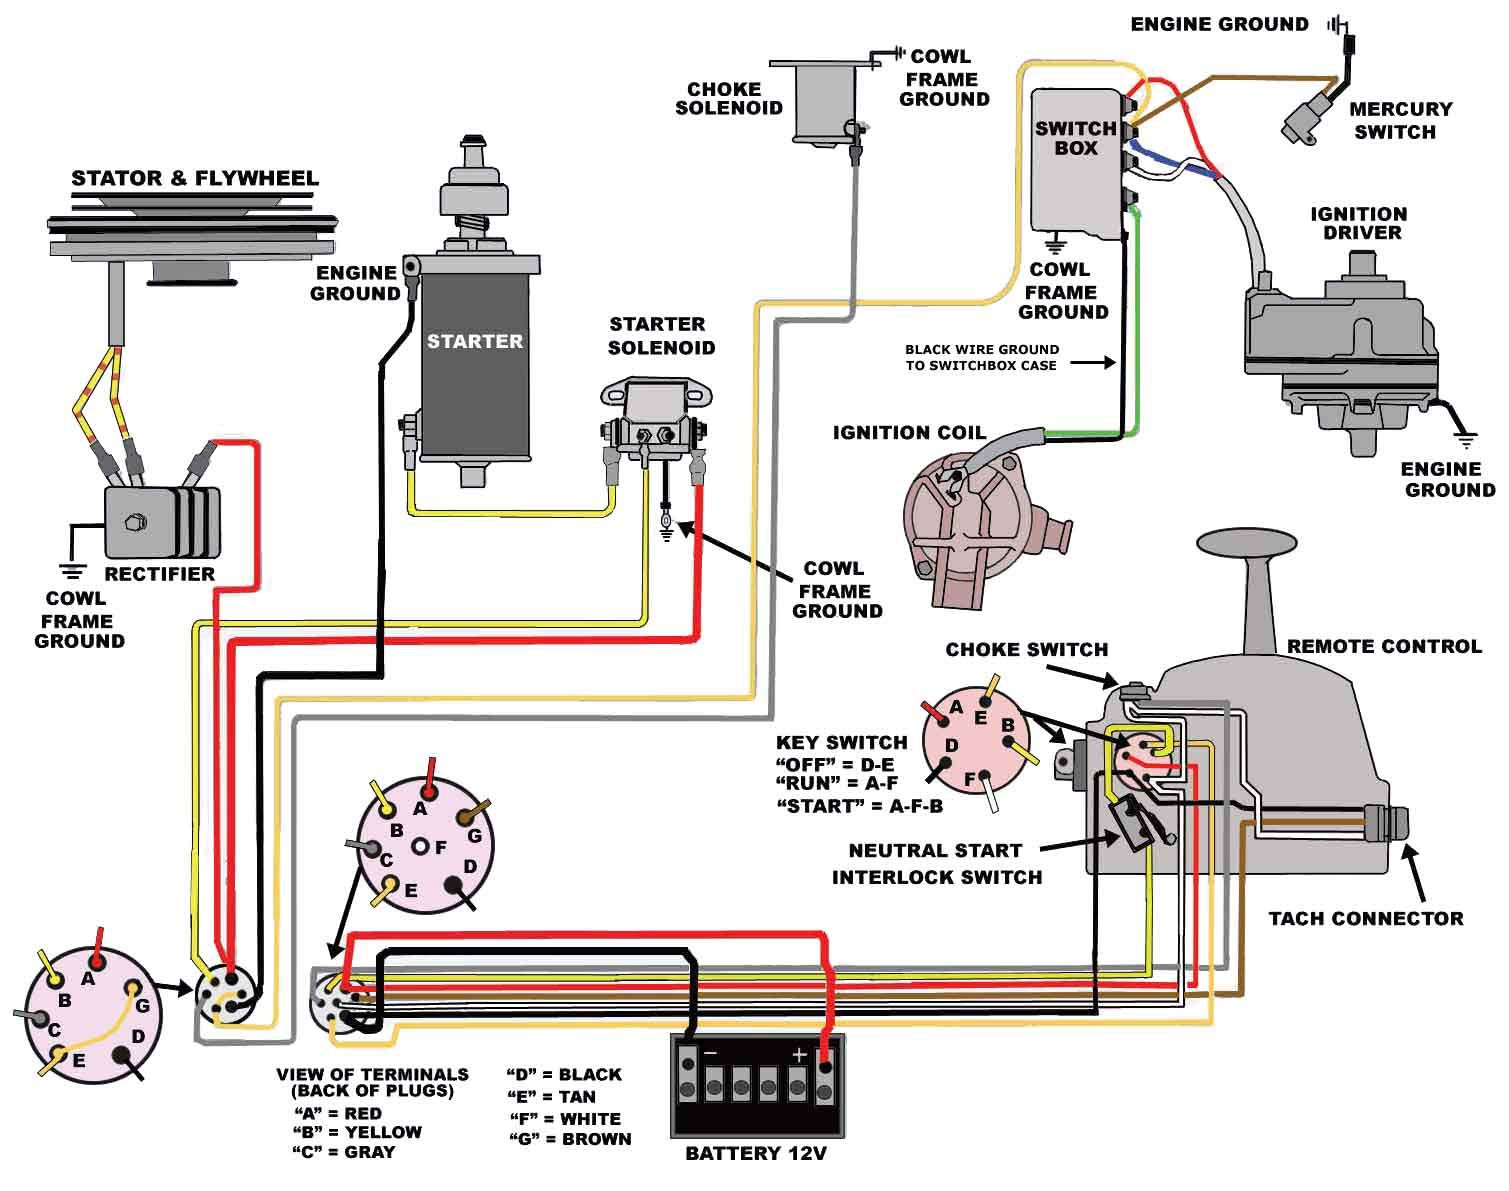 hight resolution of mercury wiring diagram wiring diagram blogs rh 4 11 2 restaurant freinsheimer hof de mercury force 40 hp wiring diagram mercury 40 hp 4 stroke wiring